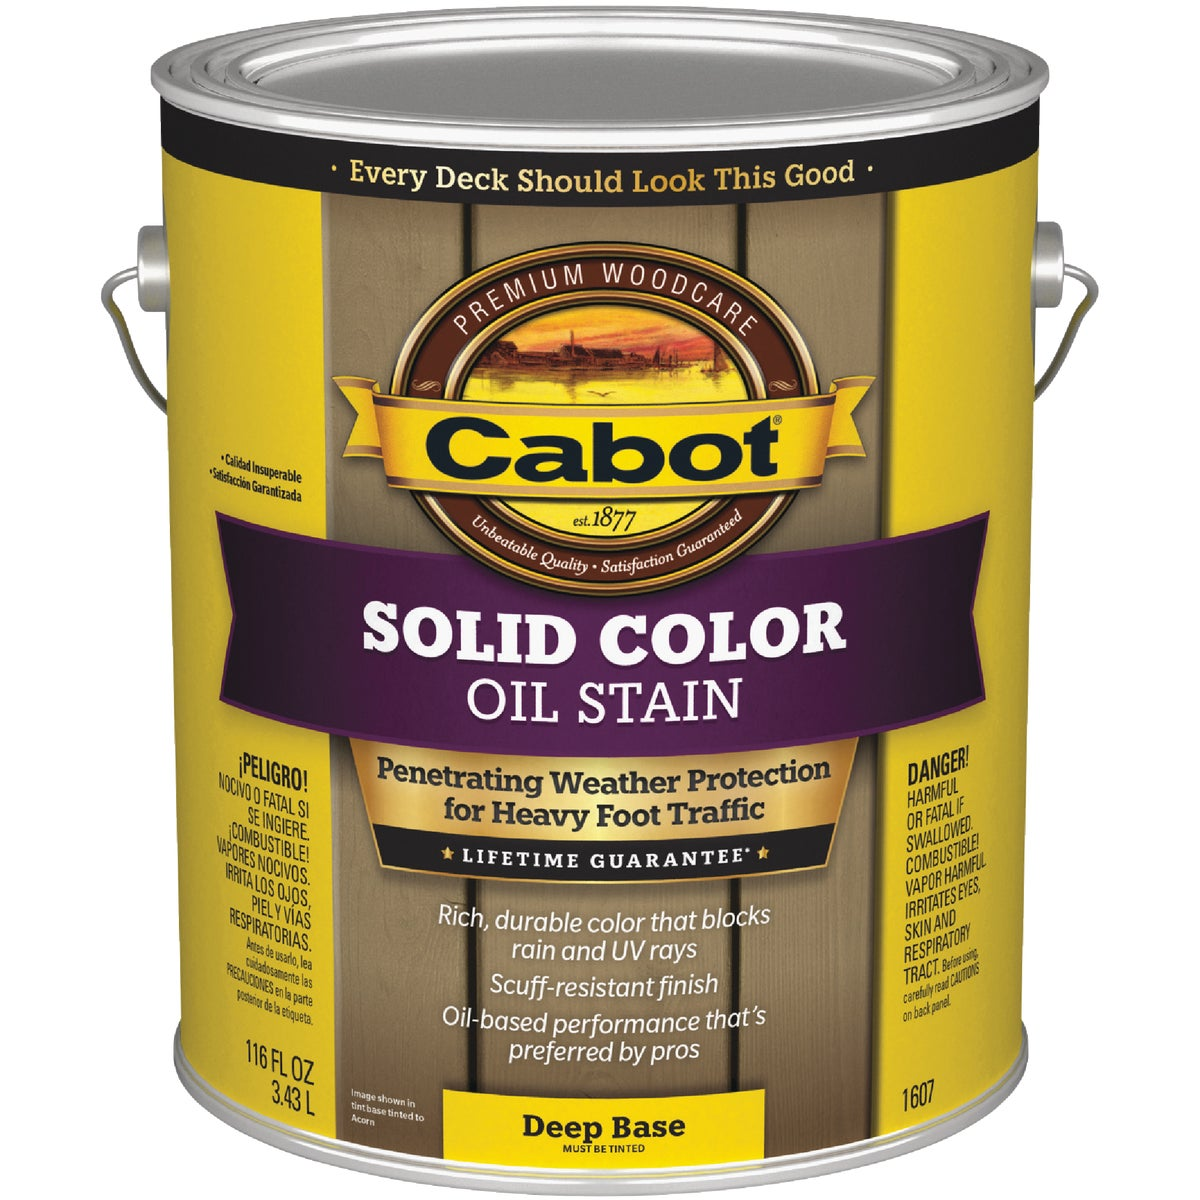 DEEP BS SOLID DECK STAIN - 140.0001607.007 by Valspar Corp